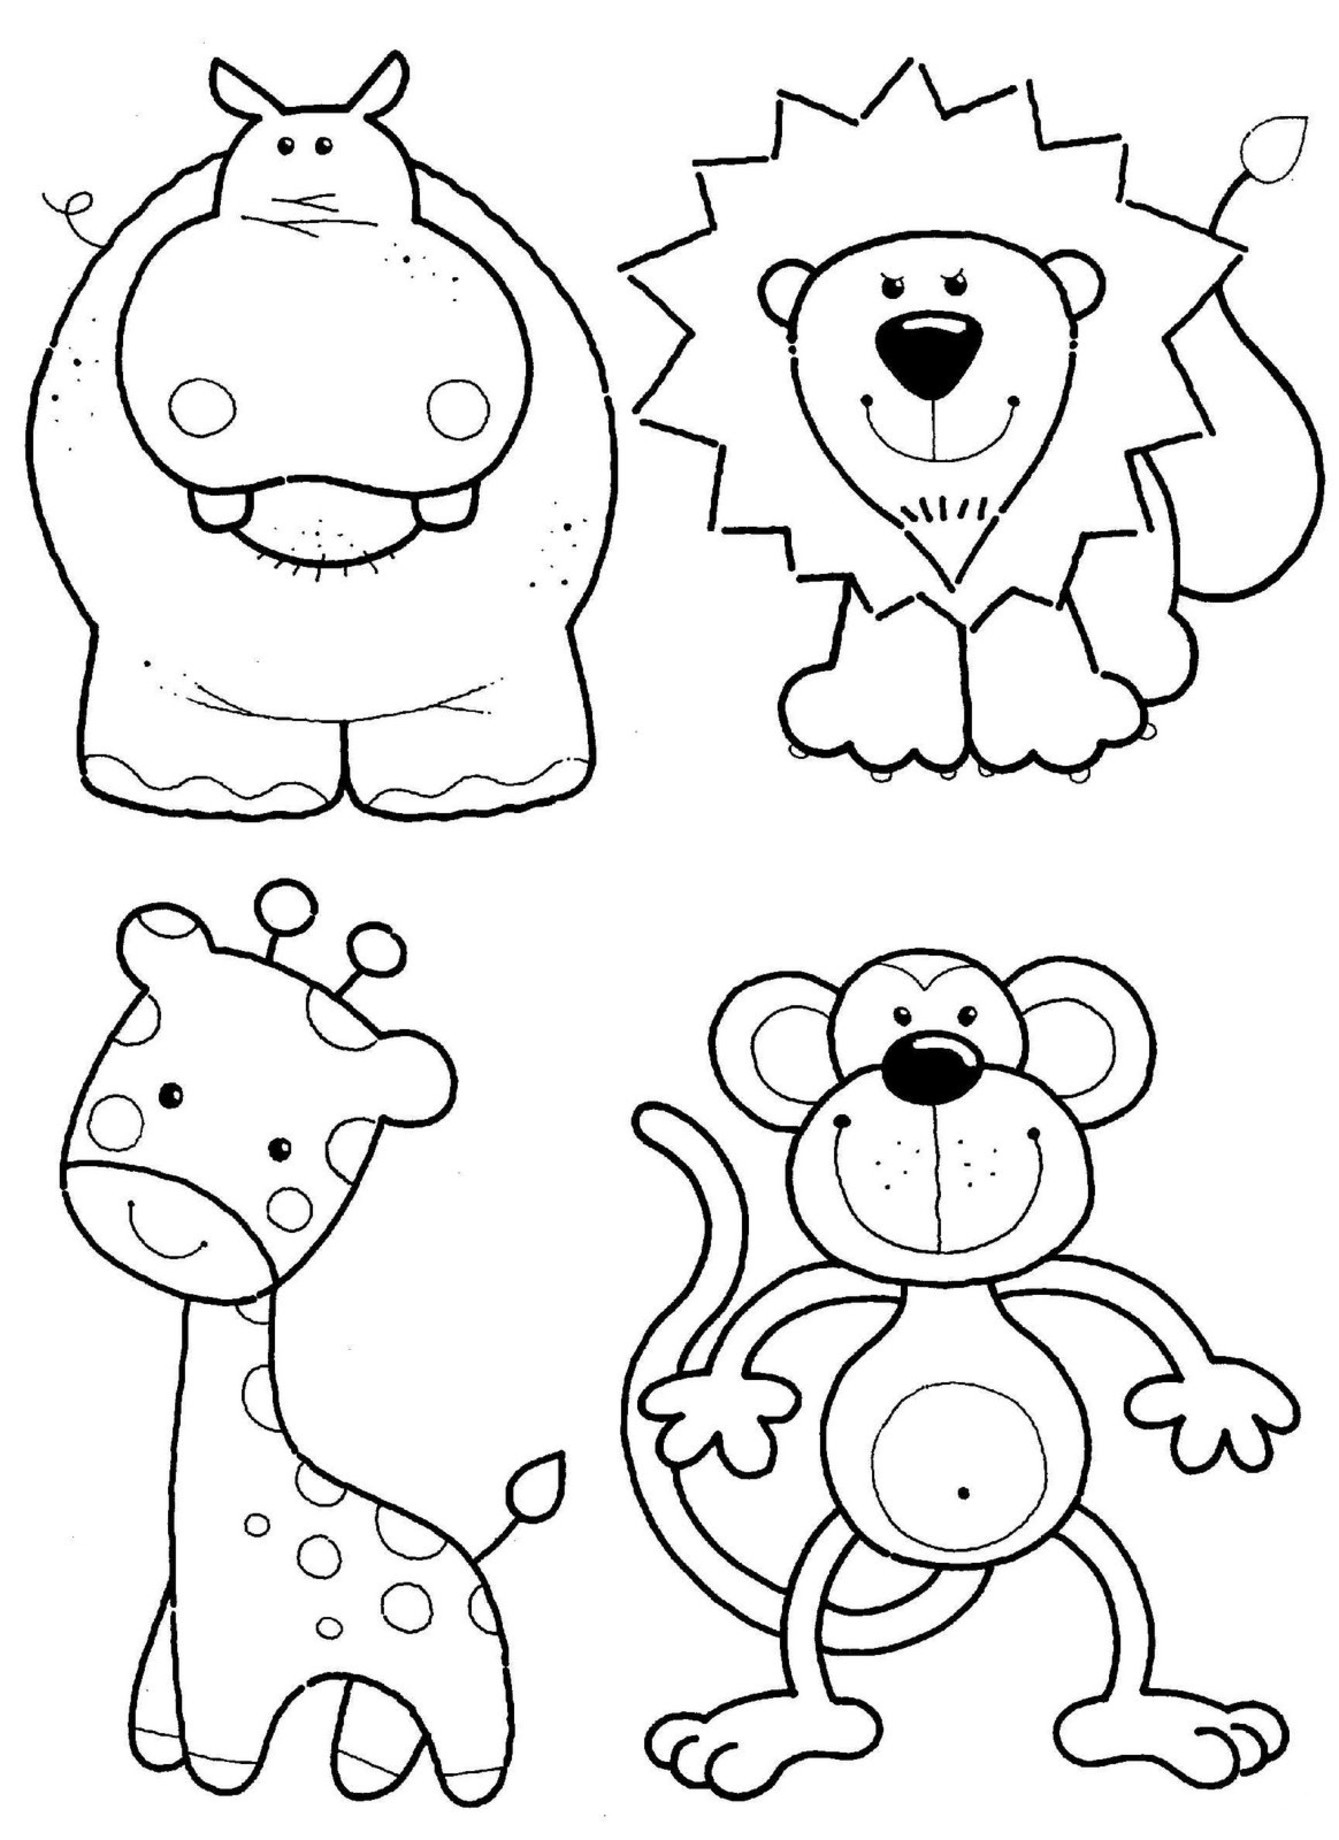 cute pictures to color free printable chibi coloring pages for kids to pictures cute color